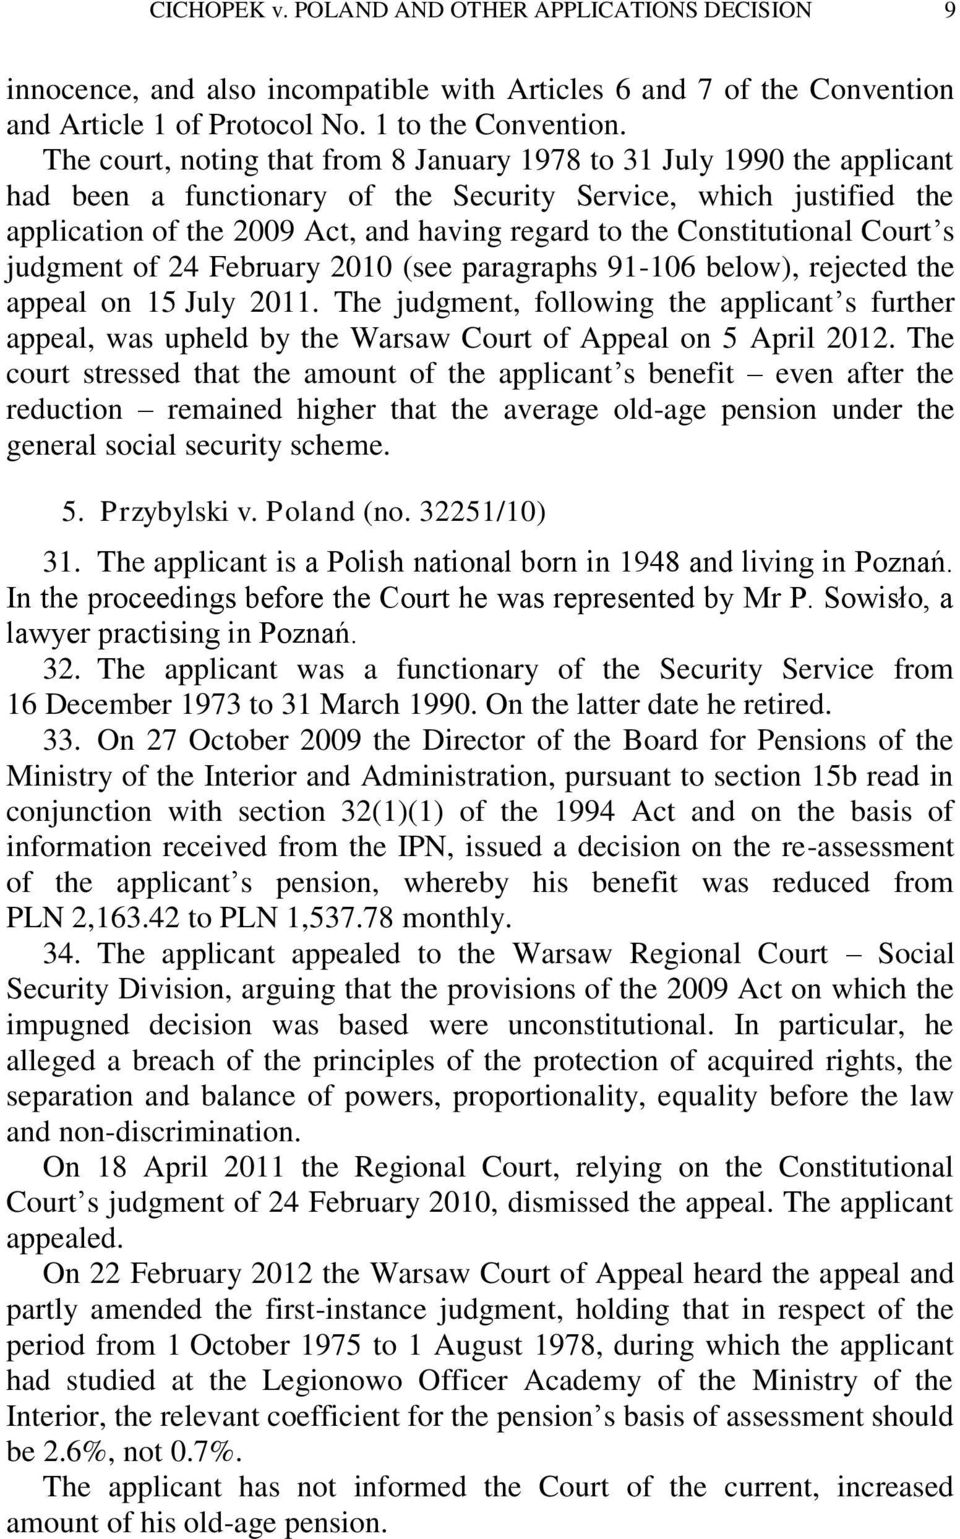 Constitutional Court s judgment of 24 February 2010 (see paragraphs 91-106 below), rejected the appeal on 15 July 2011.